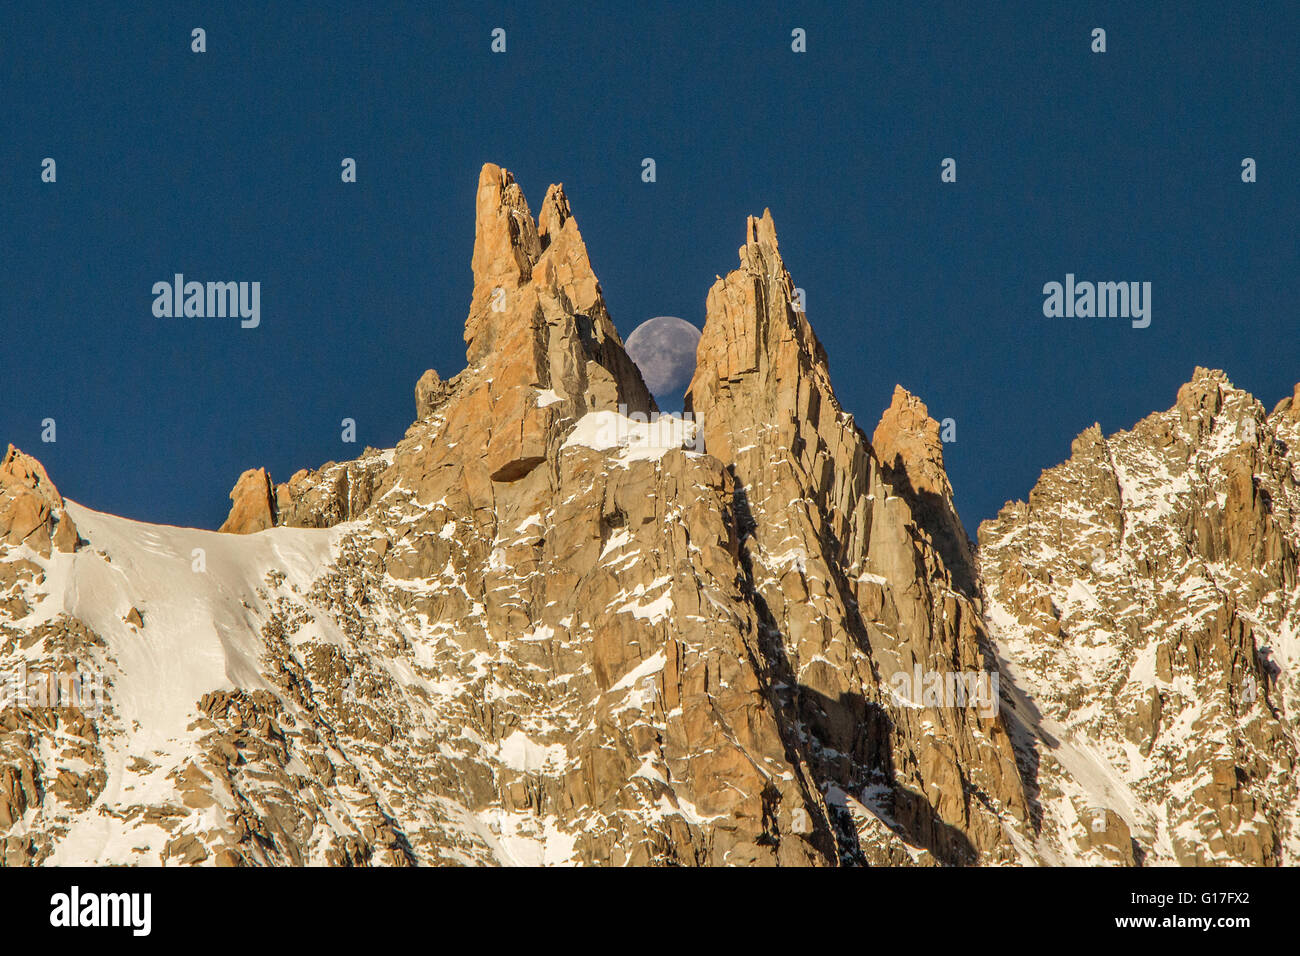 The perfect alignment of the moon between two rocky peaks - Stock Image